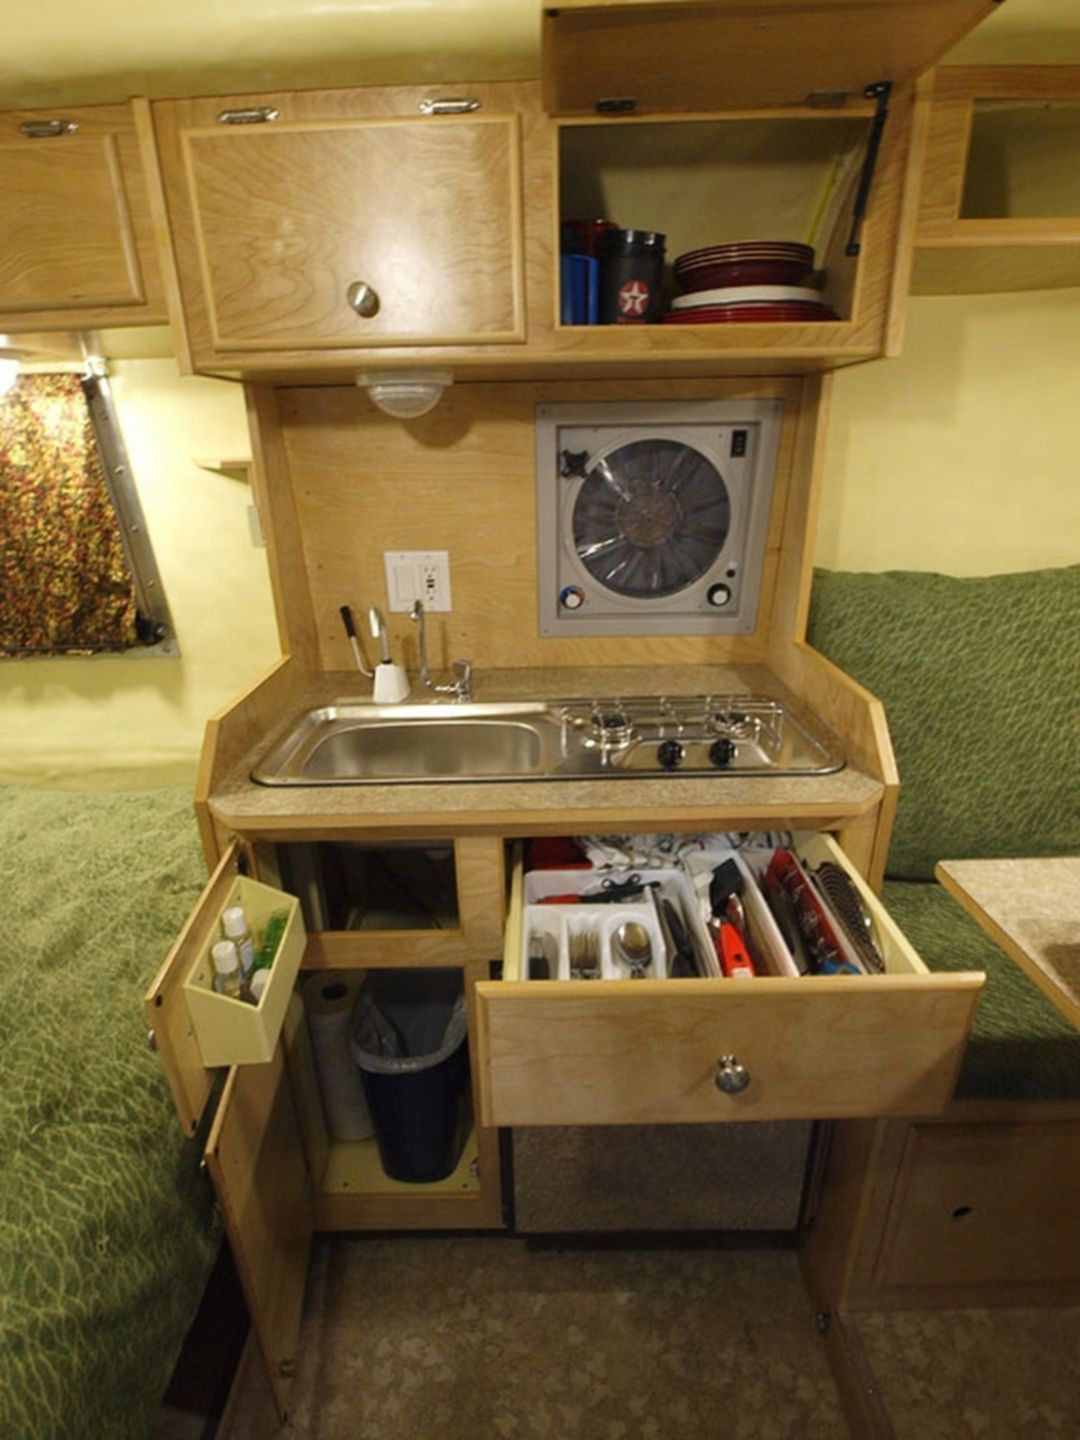 Top 20 Small Rv Kitchen Design For Cozy Cooking Space Ideas Buses